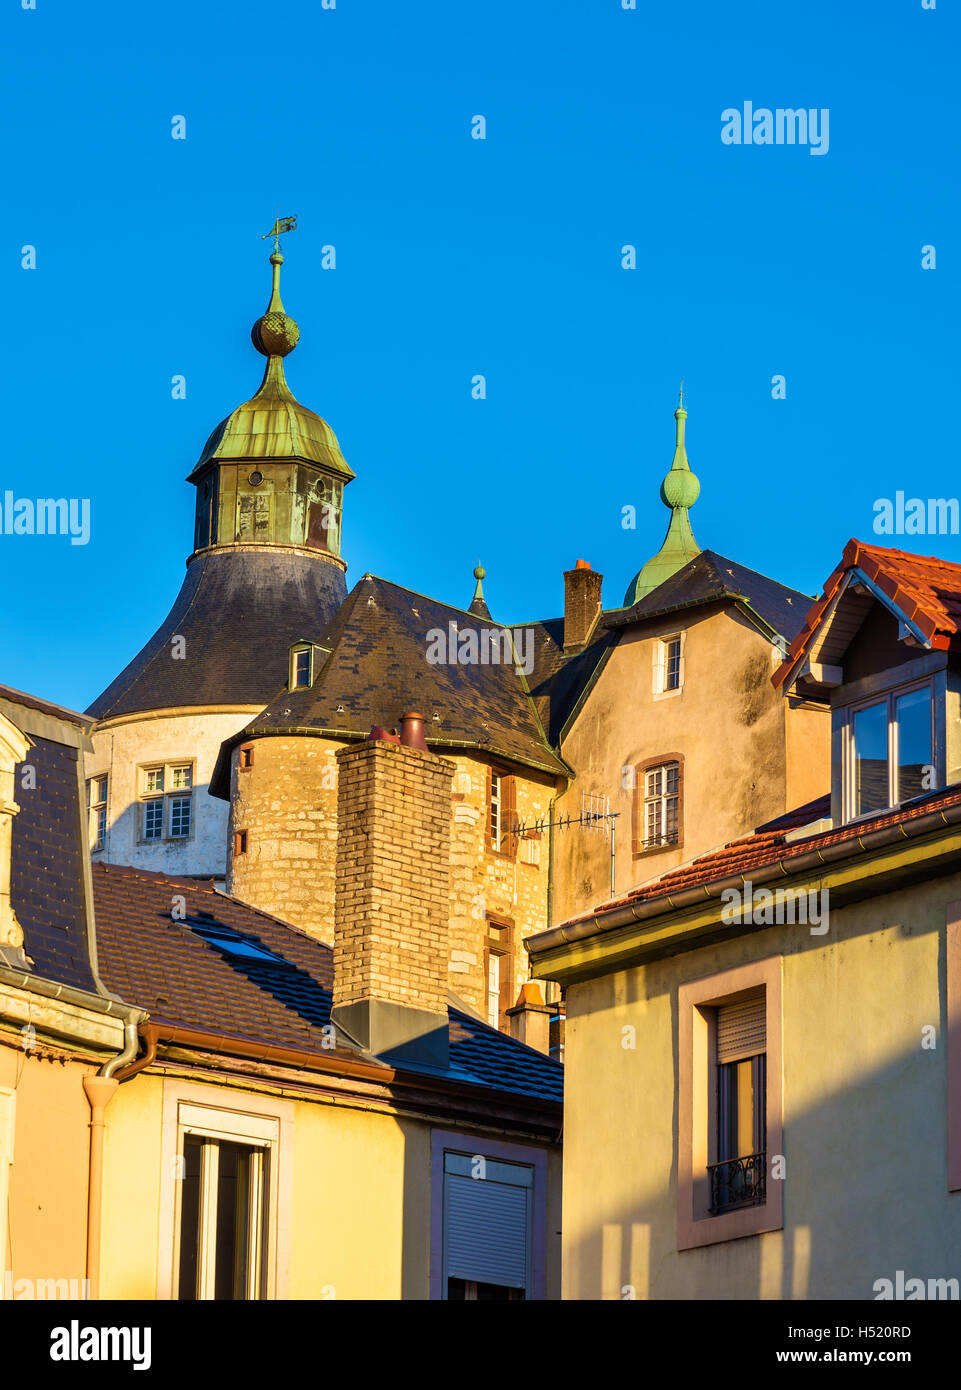 Chateau de Montbeliard as seen from the city - France - Stock Image